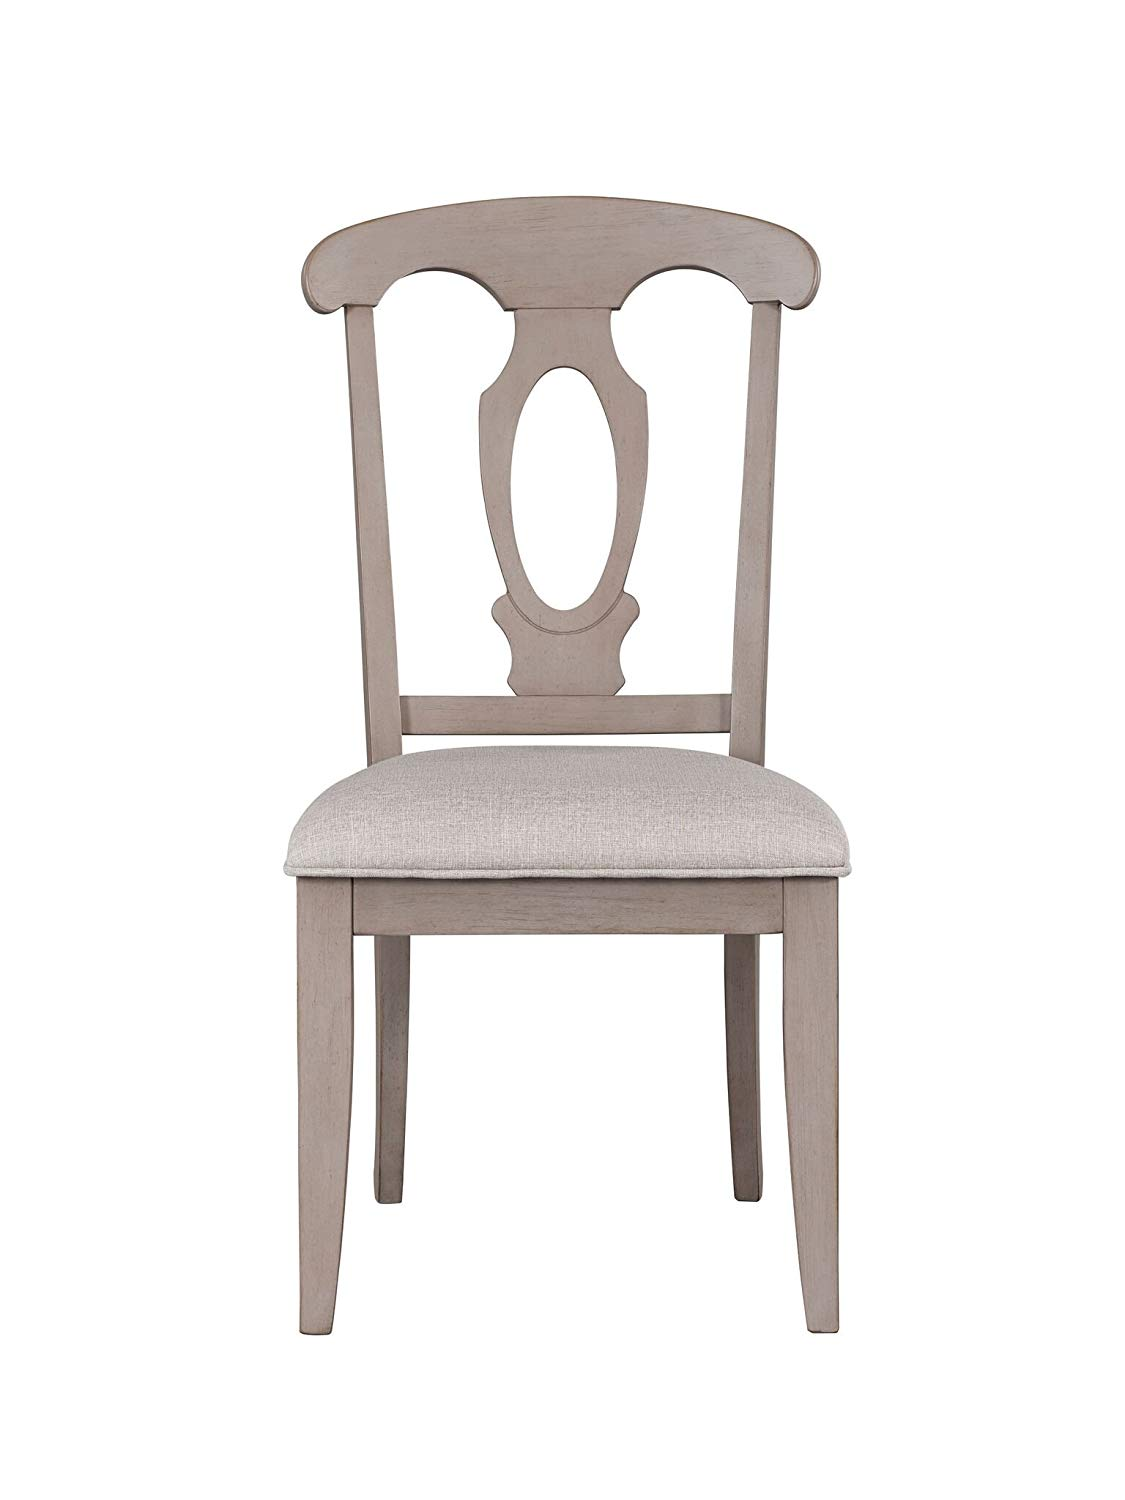 Prime Cheap Broyhill Chairs Find Broyhill Chairs Deals On Line At Pabps2019 Chair Design Images Pabps2019Com